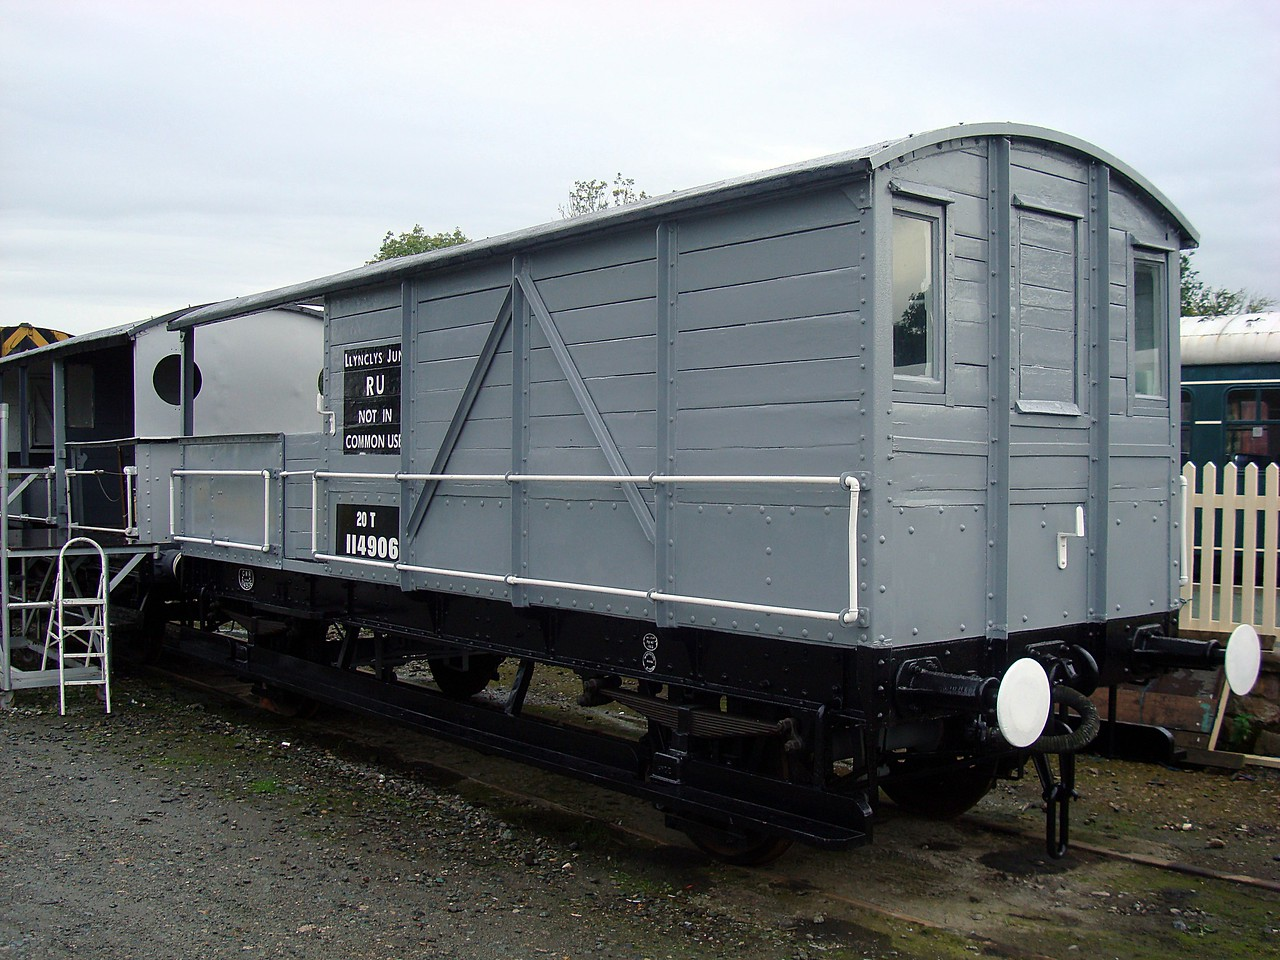 GWR 114906 Goods Brake Van 18,09,2010. (Now At Bovey Tracey Heritage Museum)